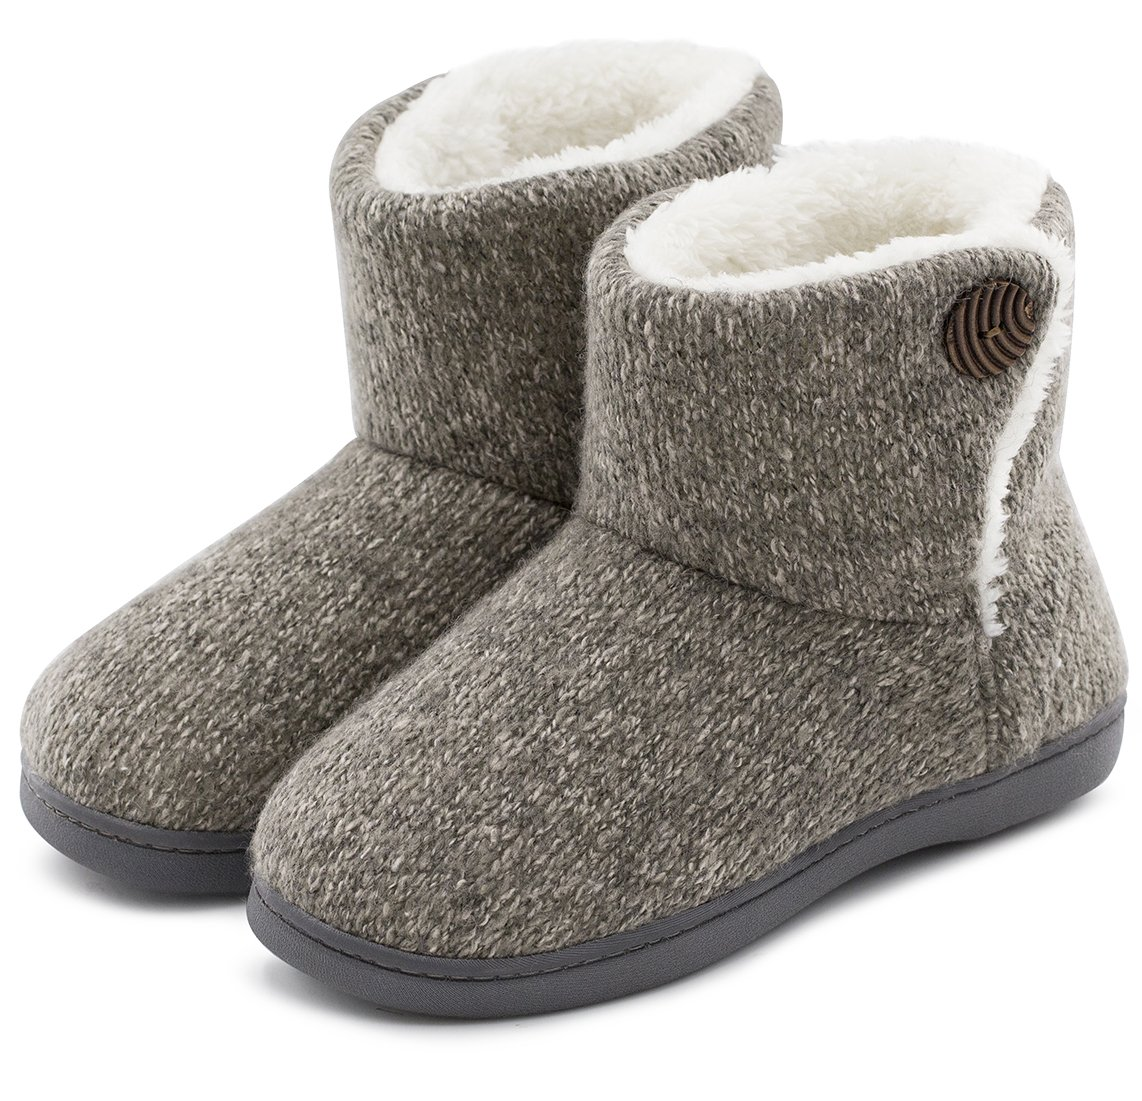 ULTRAIDEAS Women's Comfort Woolen Yarn Woven Bootie Slippers Memory Foam Plush Lining Slip-on House Shoes w/Anti-Slip Sole Indoor, Outdoor (Large/9-10 B(M) US, Gray)